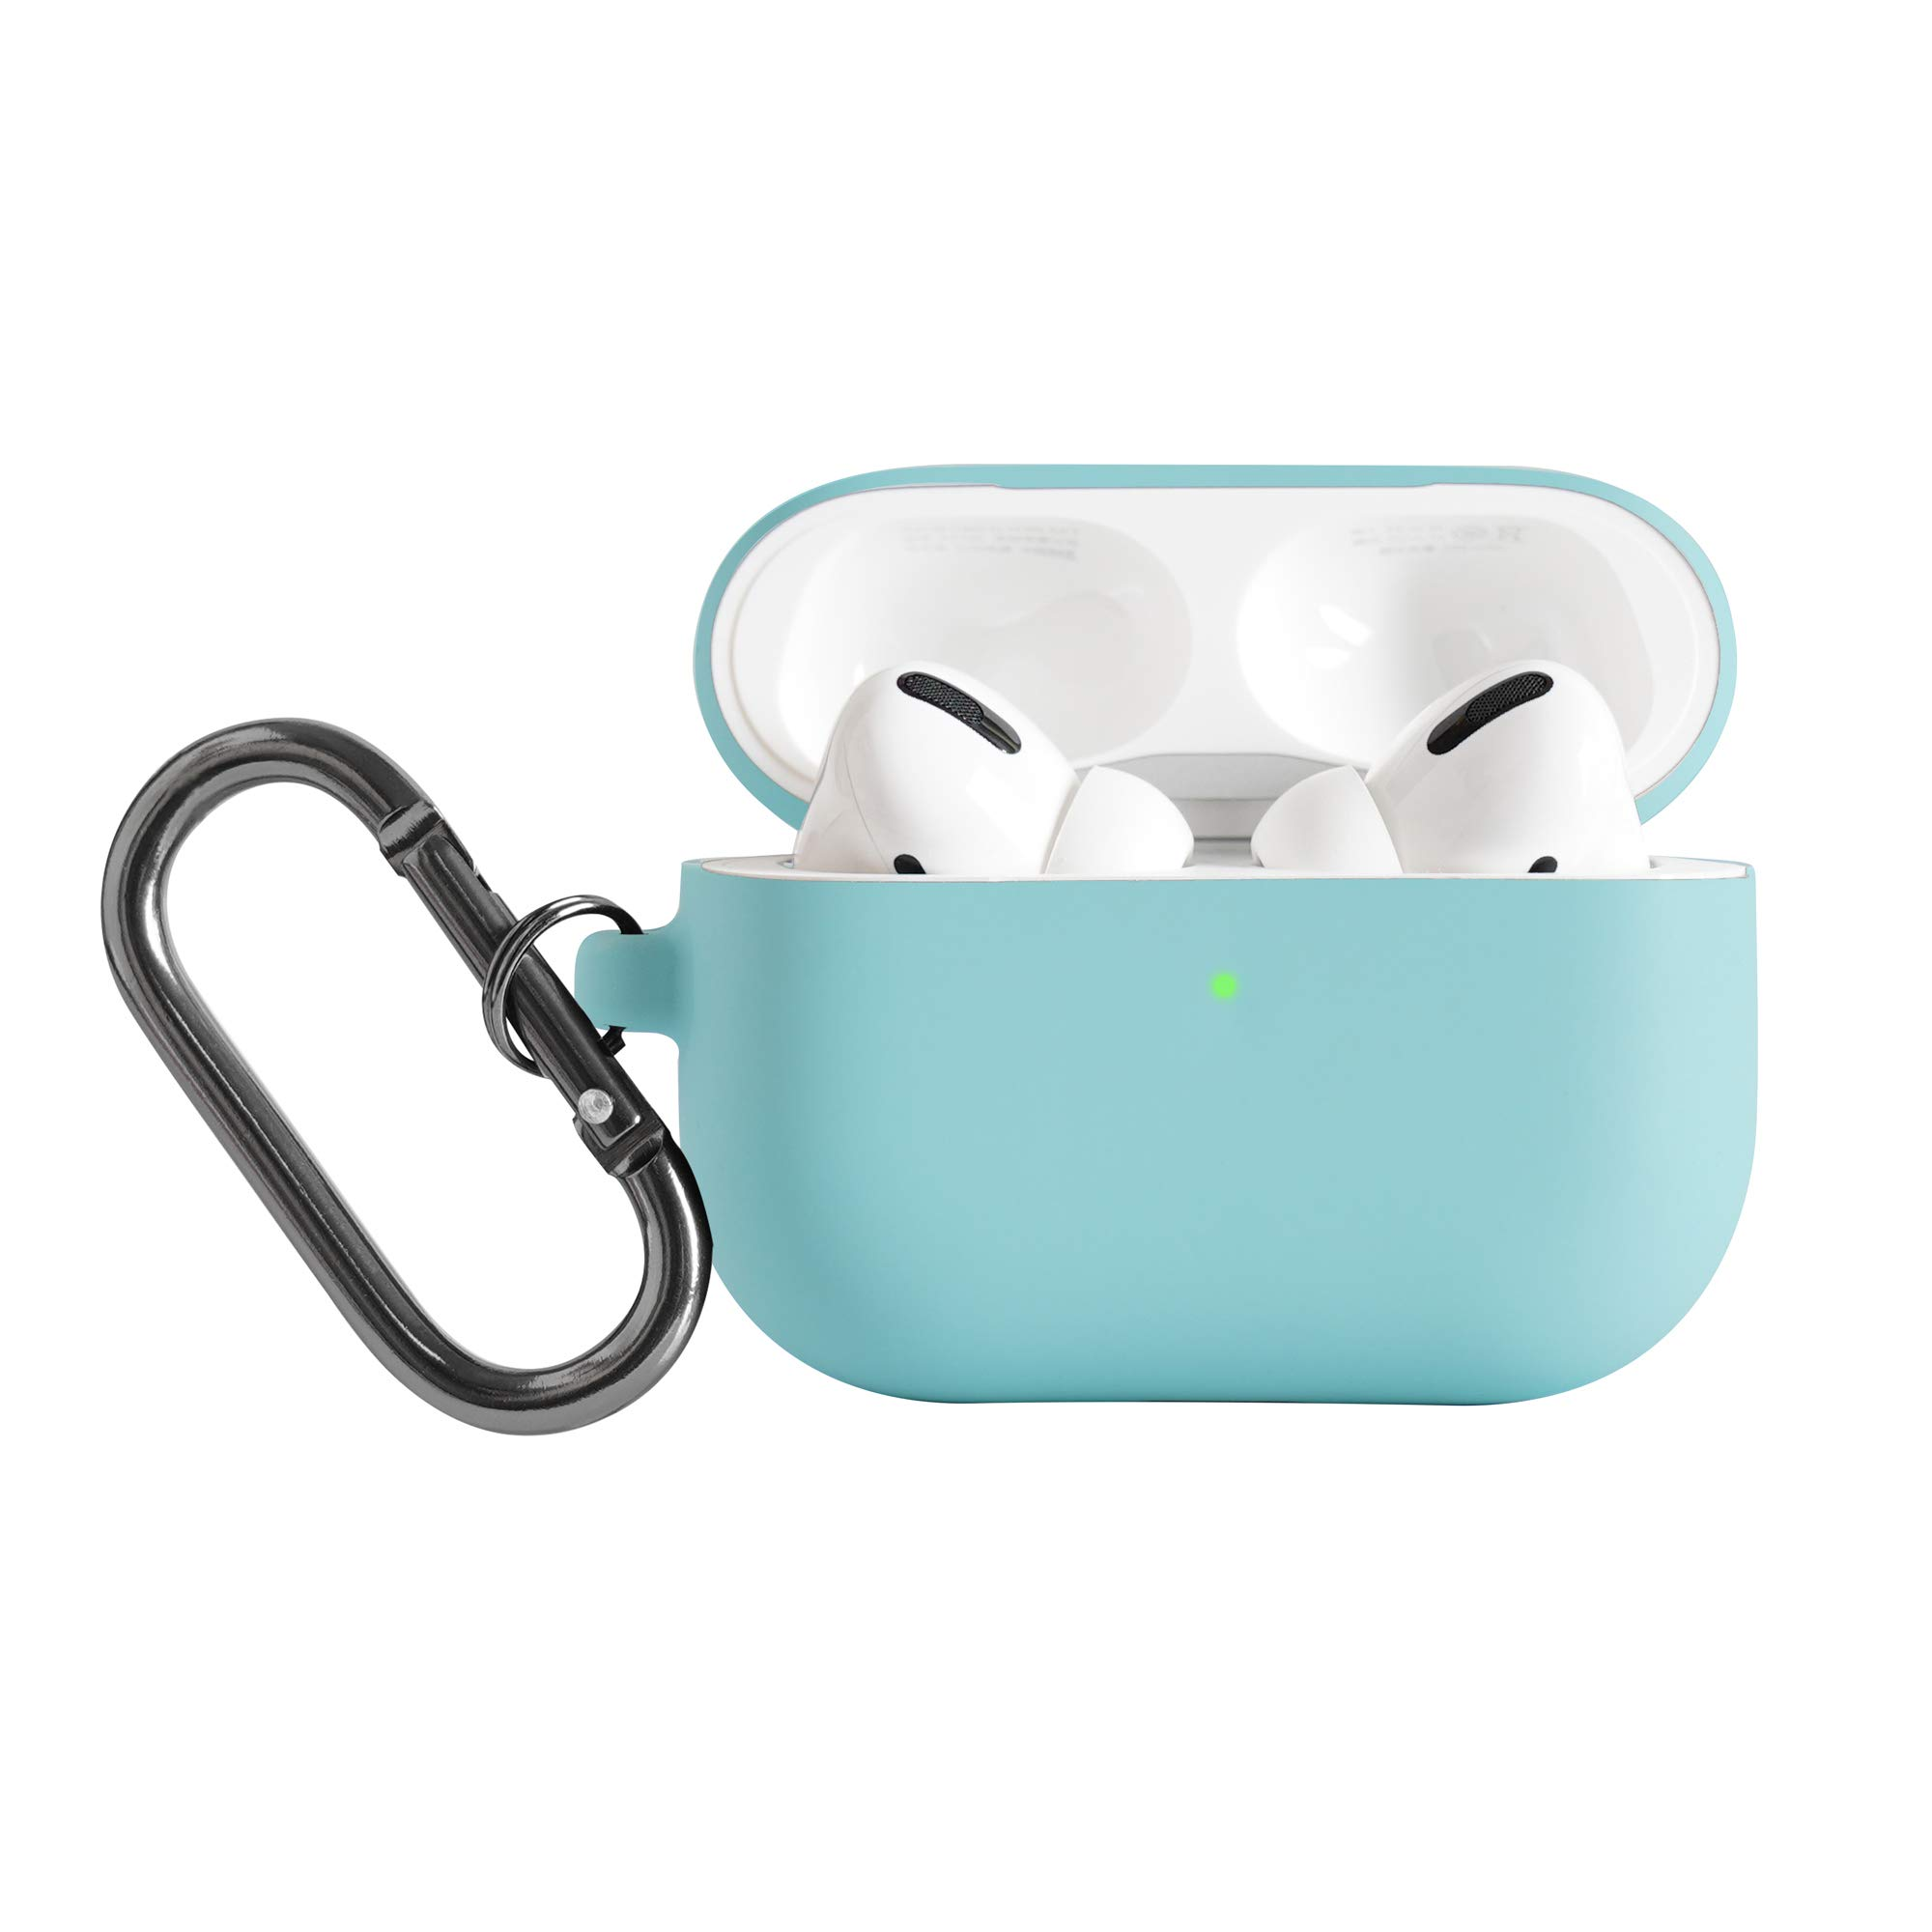 DamonLight Airpods Pro Case Cover with Carabiner Keychain Compatible with Air pods Pro「Front LED Visible」Protective Silicone Airpods Pro Case(Ice Blue)